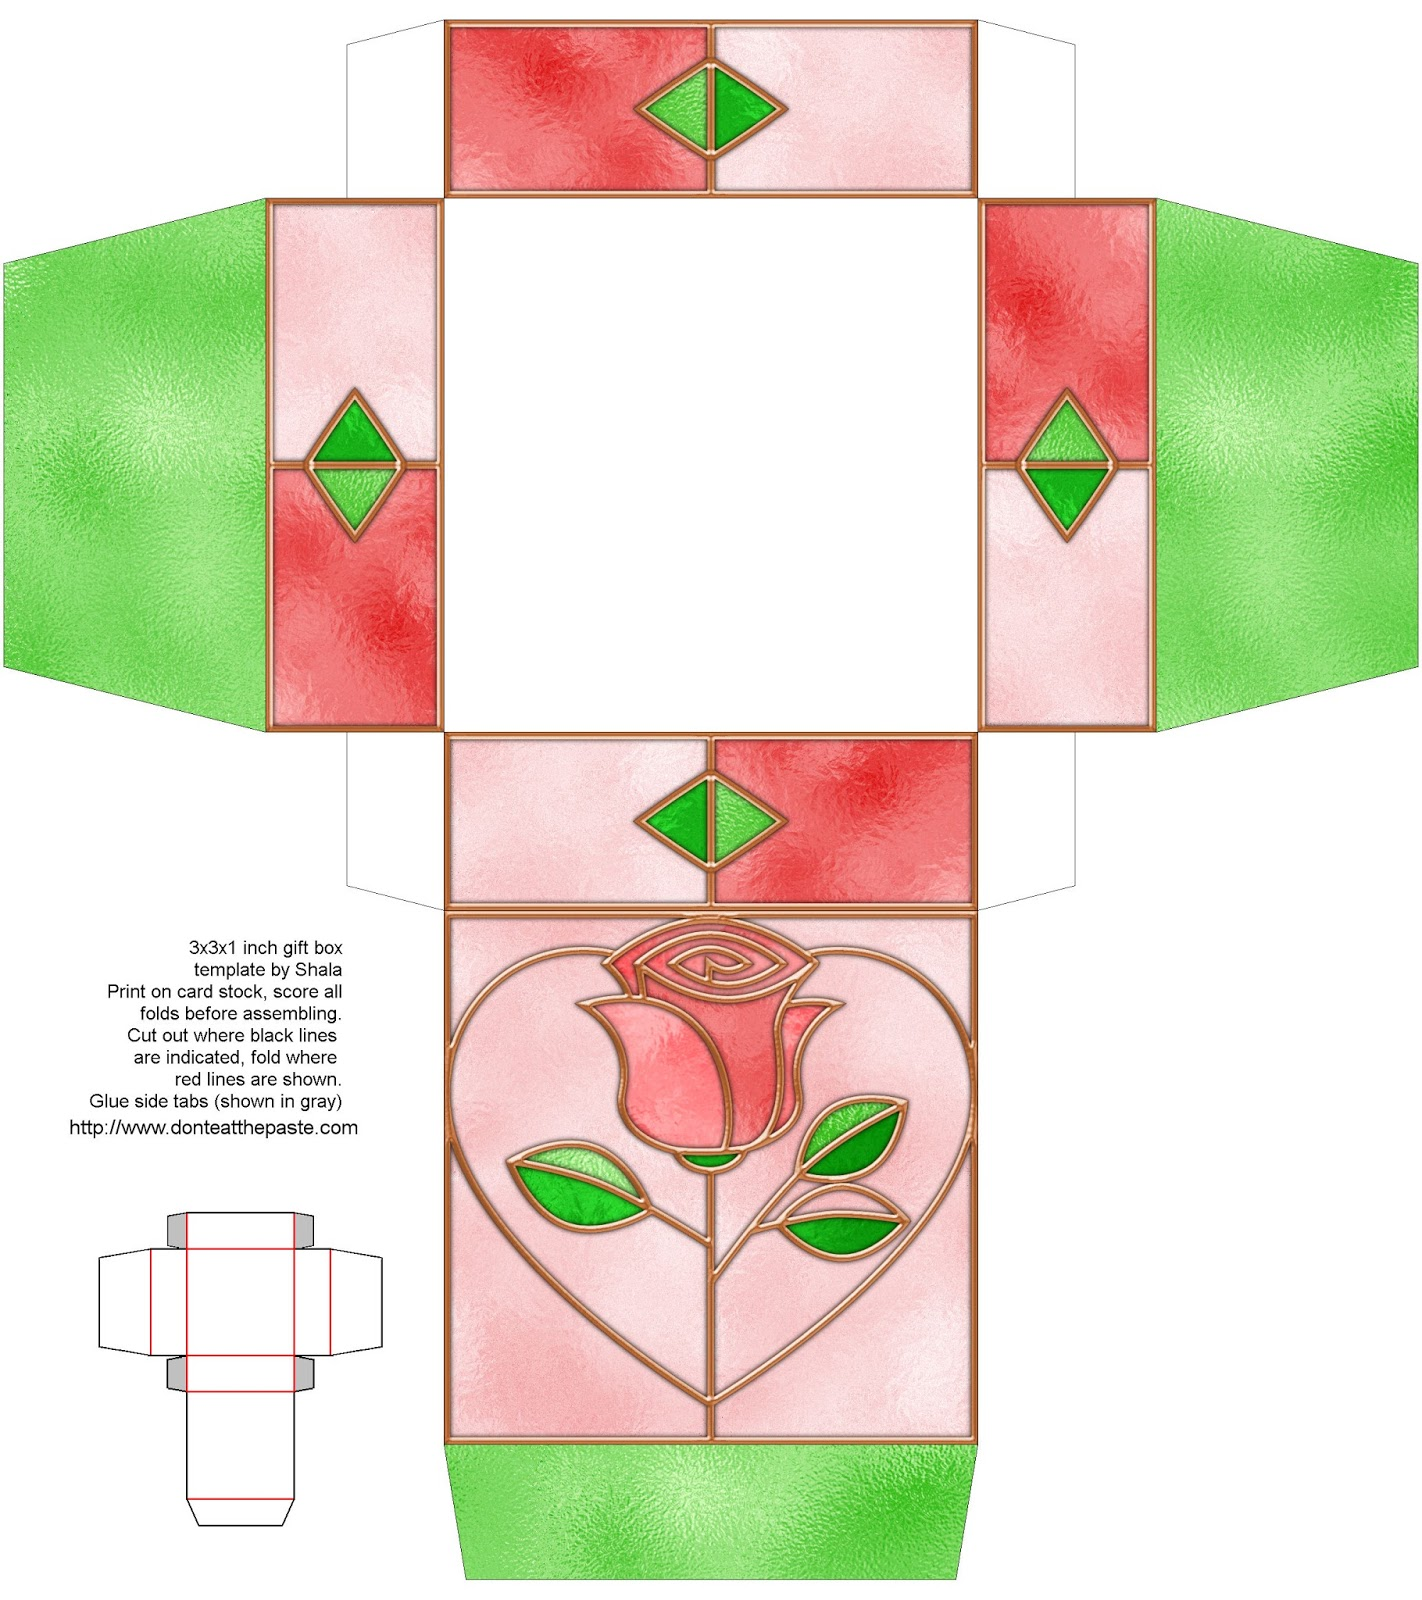 Stained glass rose printable box #papercrafts #giftbox #favors #boxes